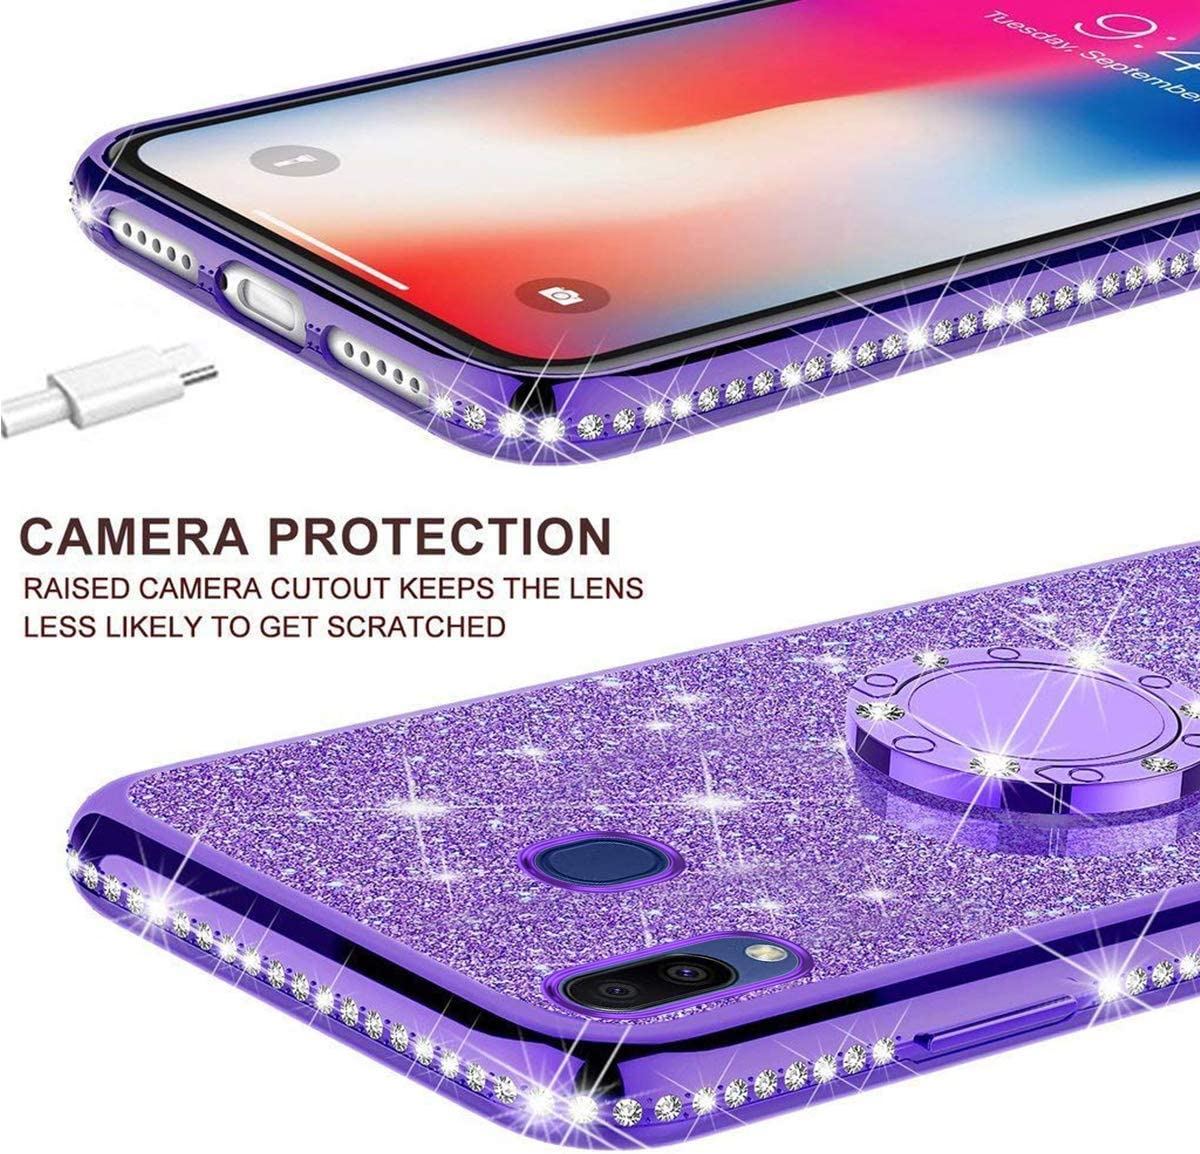 Herbests Compatible with Samsung Galaxy A50 Glitter Case Sparkly Bling Rhinestone Diamond Soft TPU Crystal Clear Flexible Protective Cover with Finger Ring Grip Holder Stand,Gold